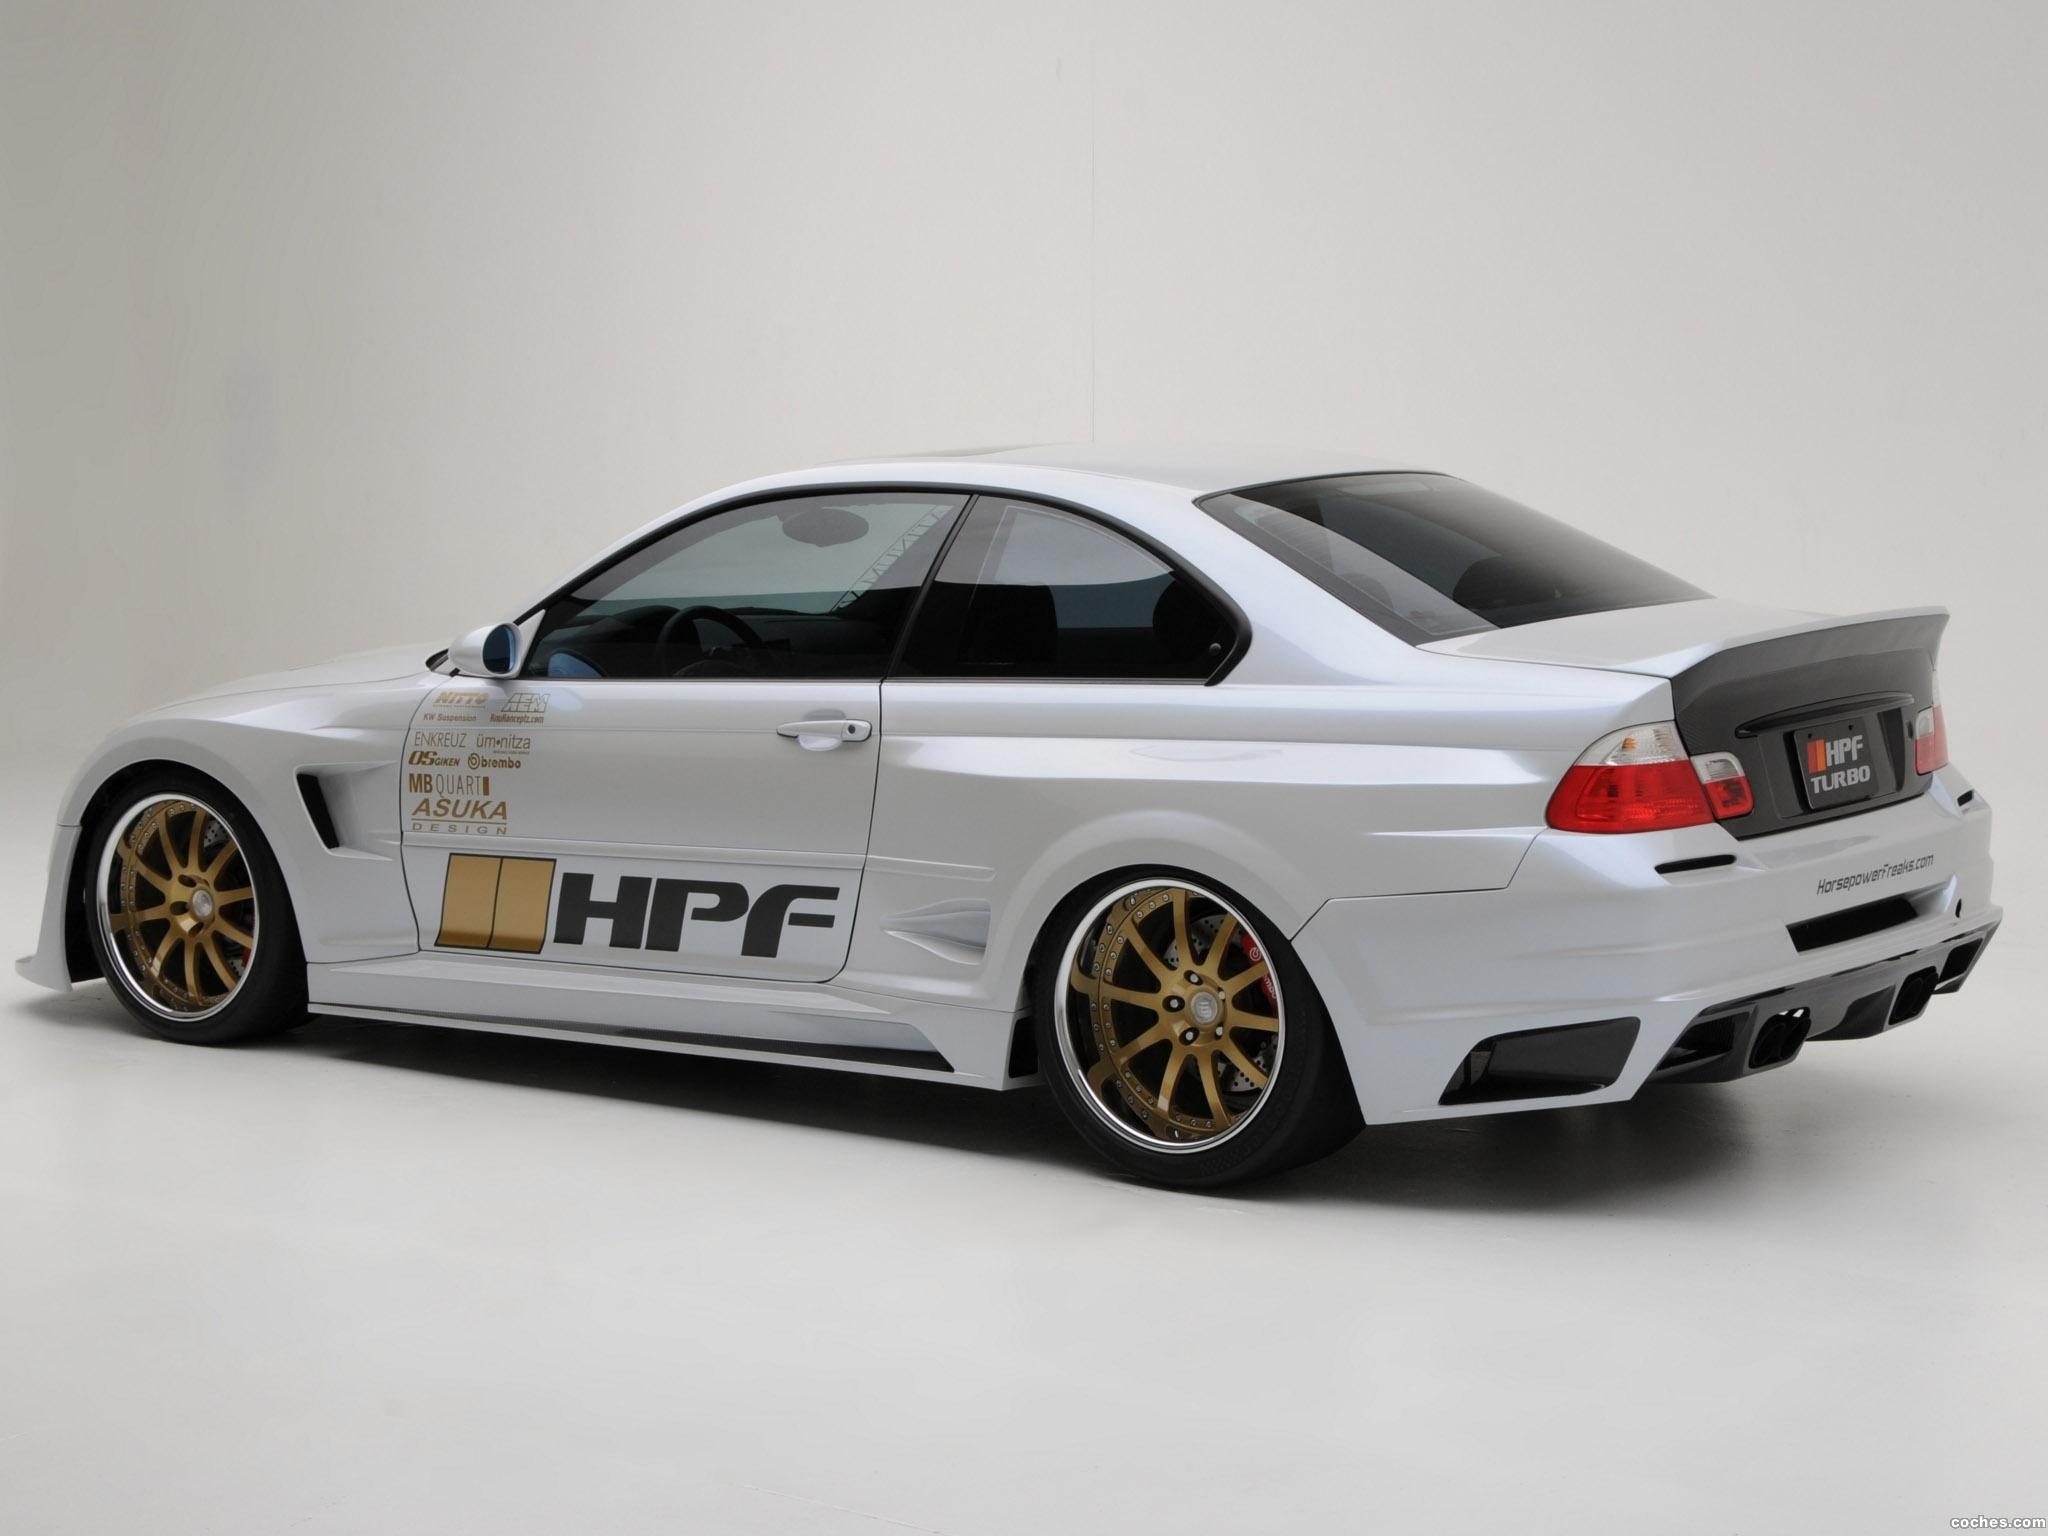 Foto 5 de HPF BMW Serie 3 M3 Turbo Stage 4 E46 2009